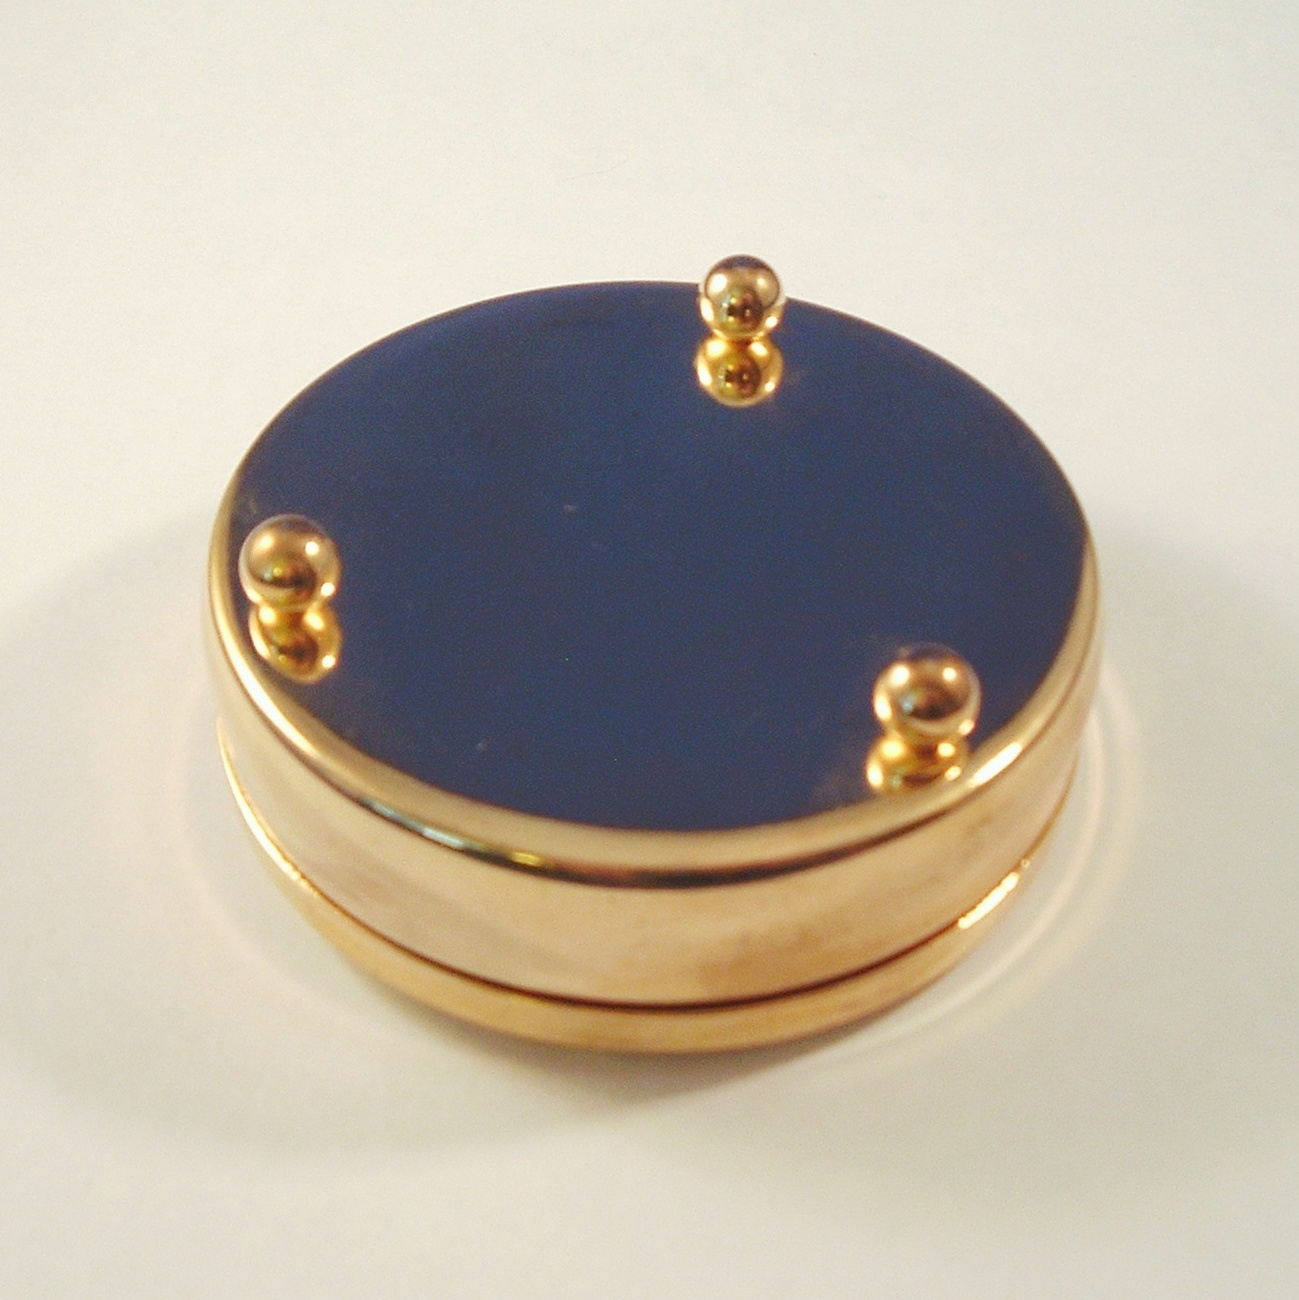 VACATION Scene Trinket Box Goldtone Collectible